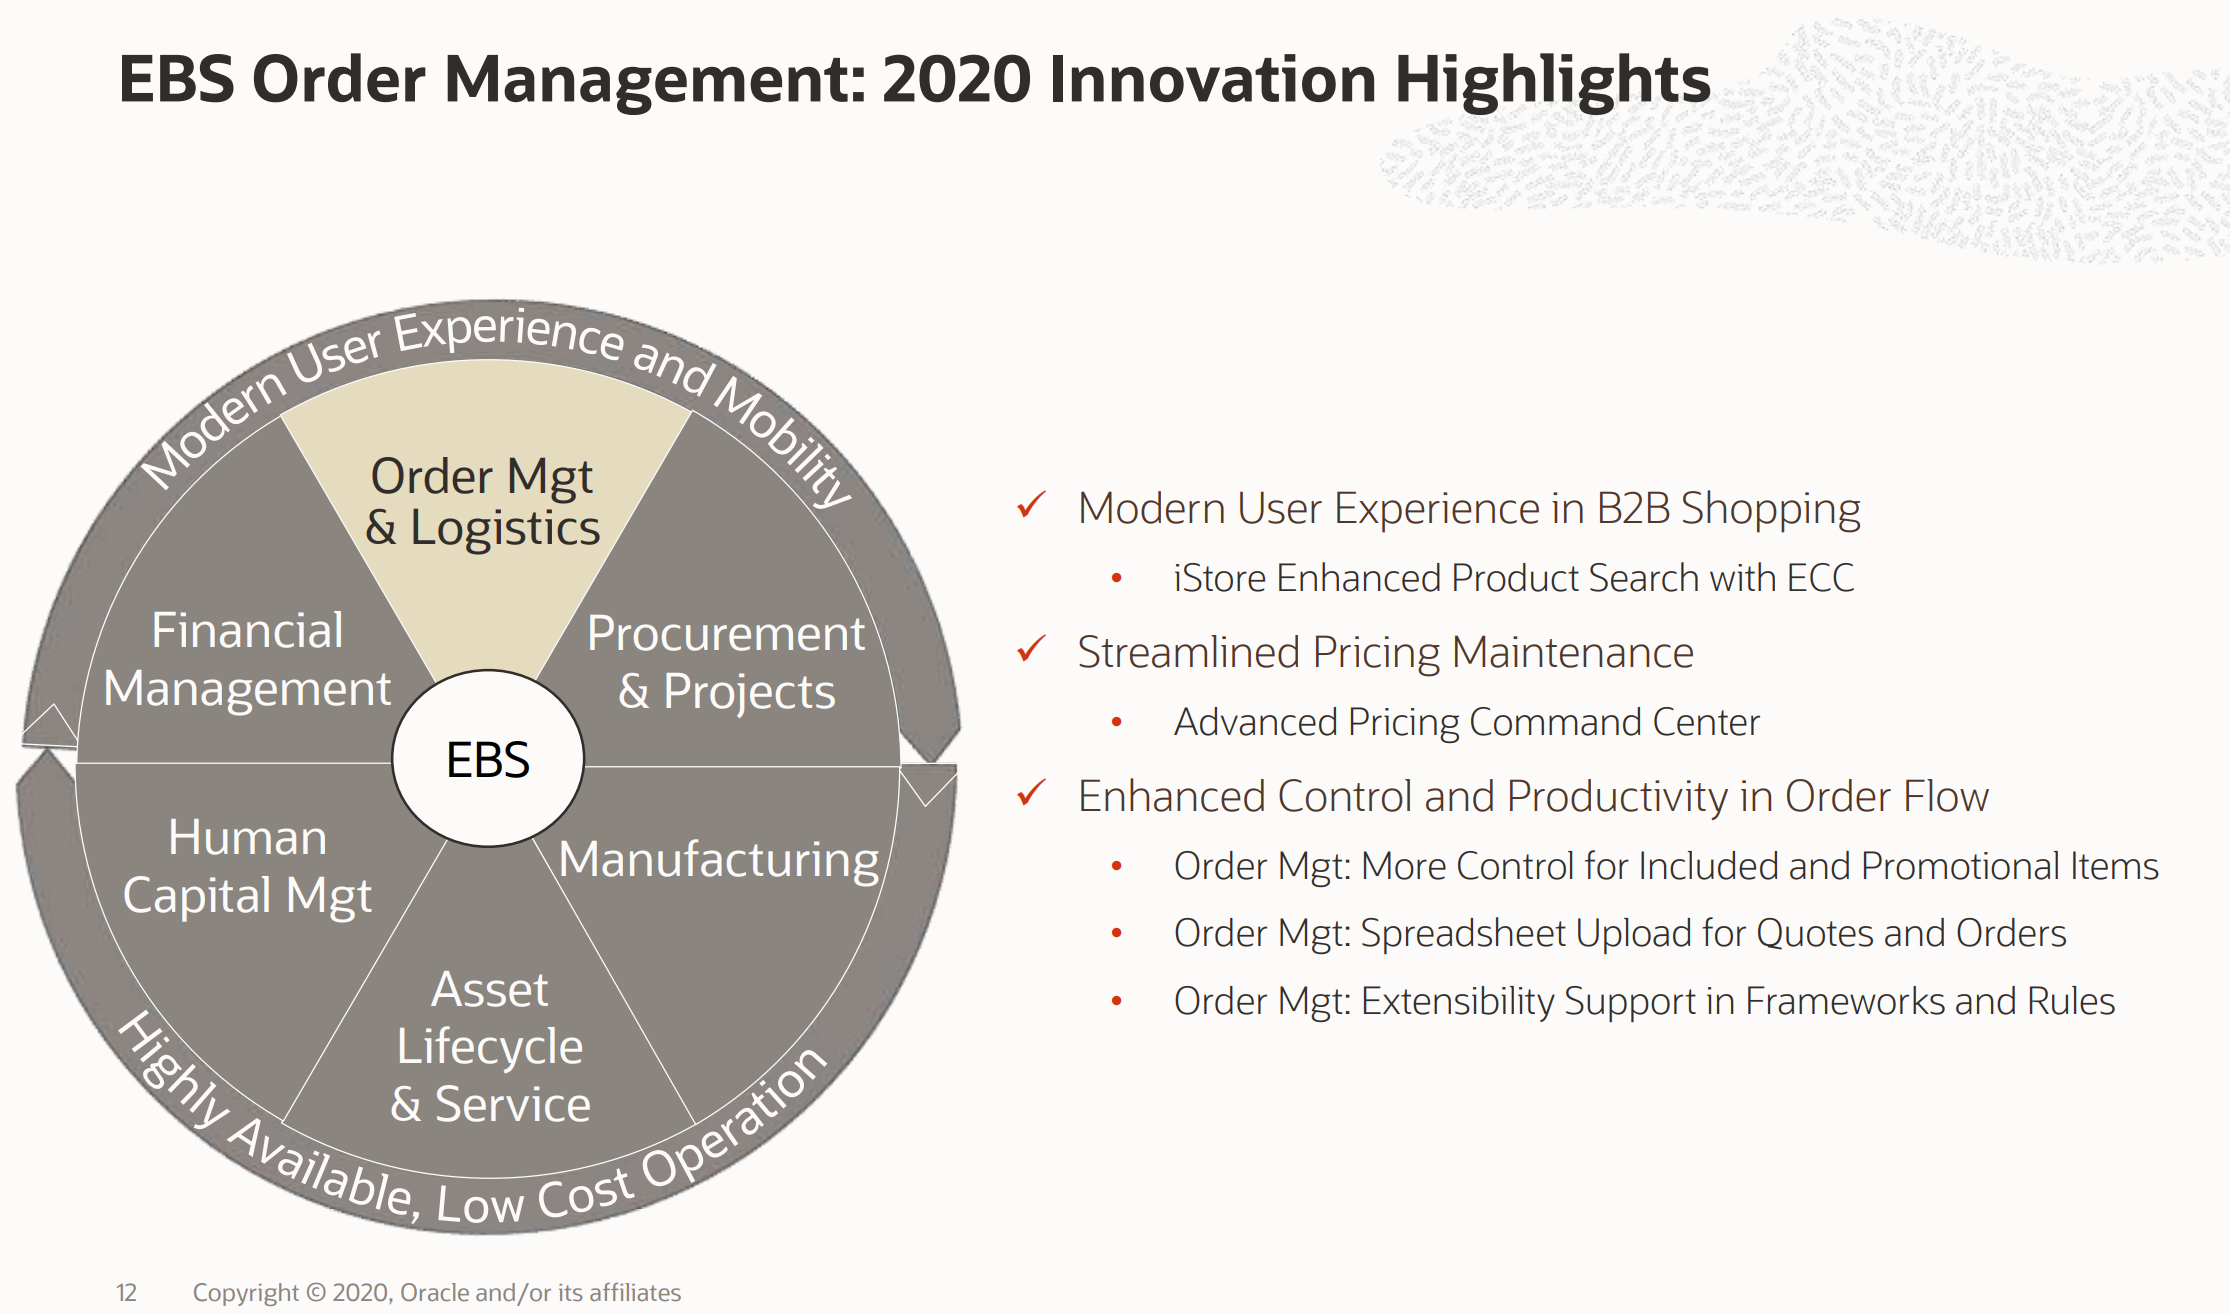 EBS Order Management 2020 Innovation Highlights